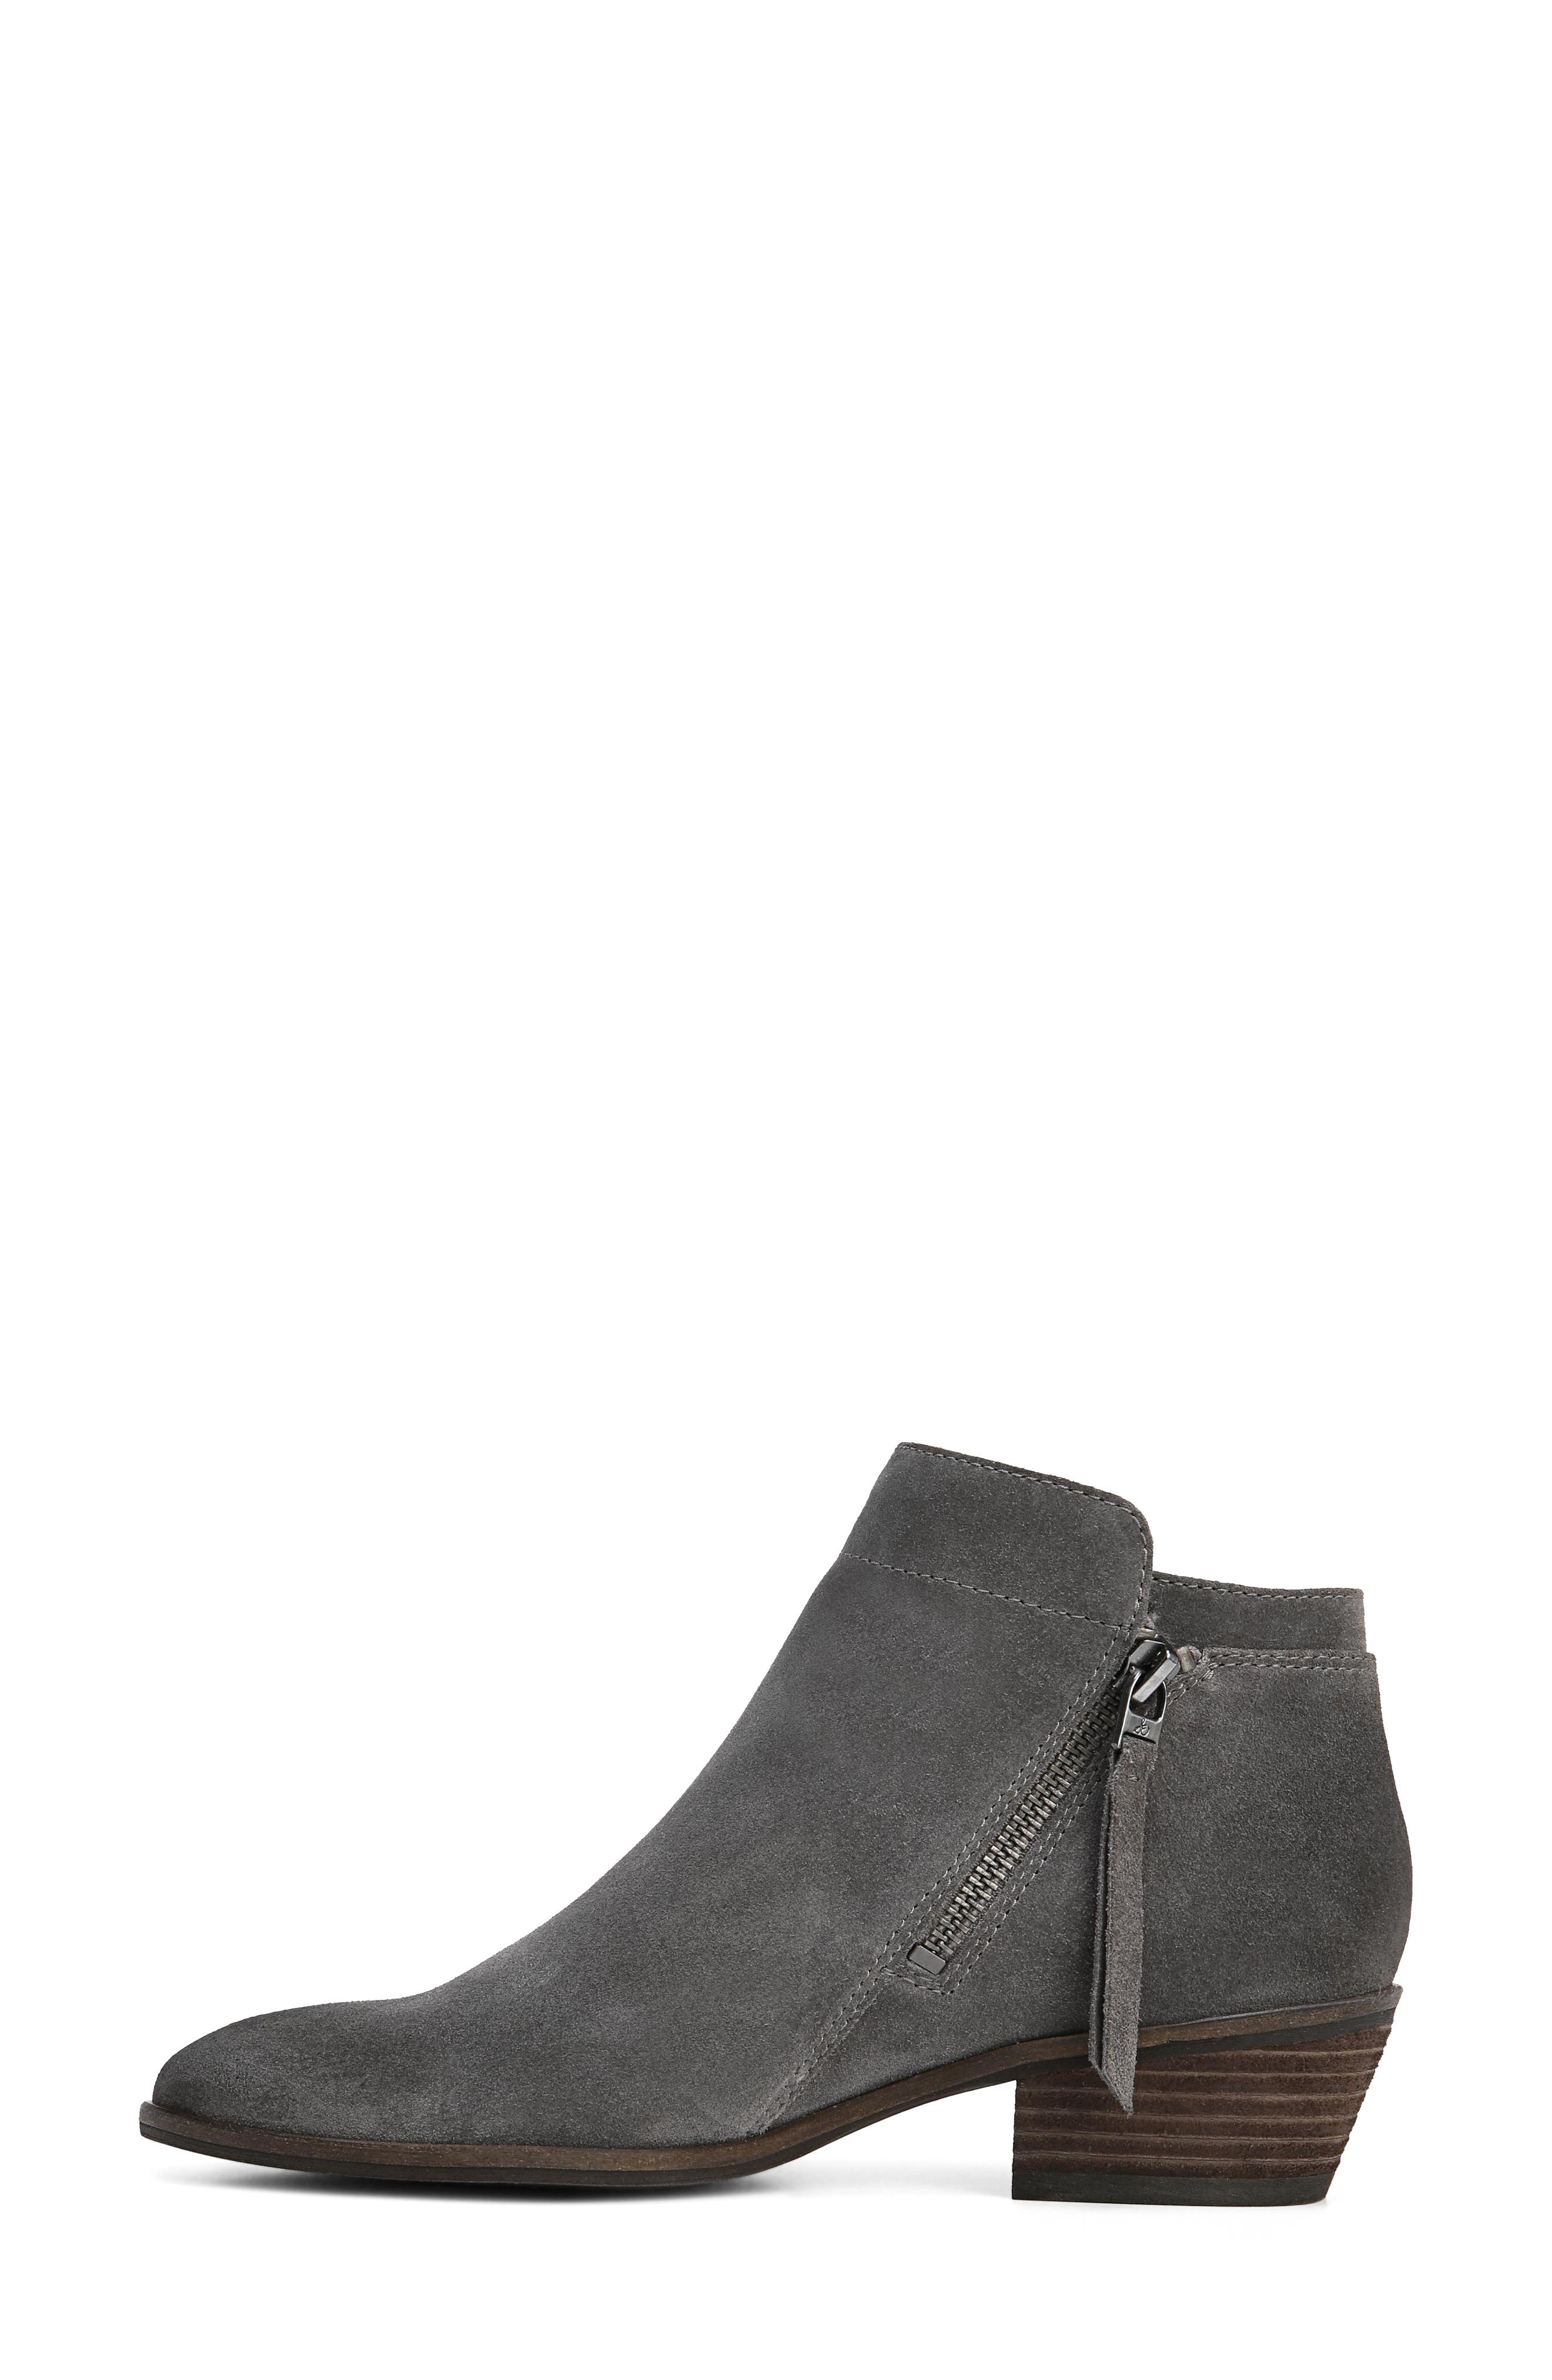 Packer Bootie,                             Alternate thumbnail 7, color,                             STEEL GREY SUEDE LEATHER